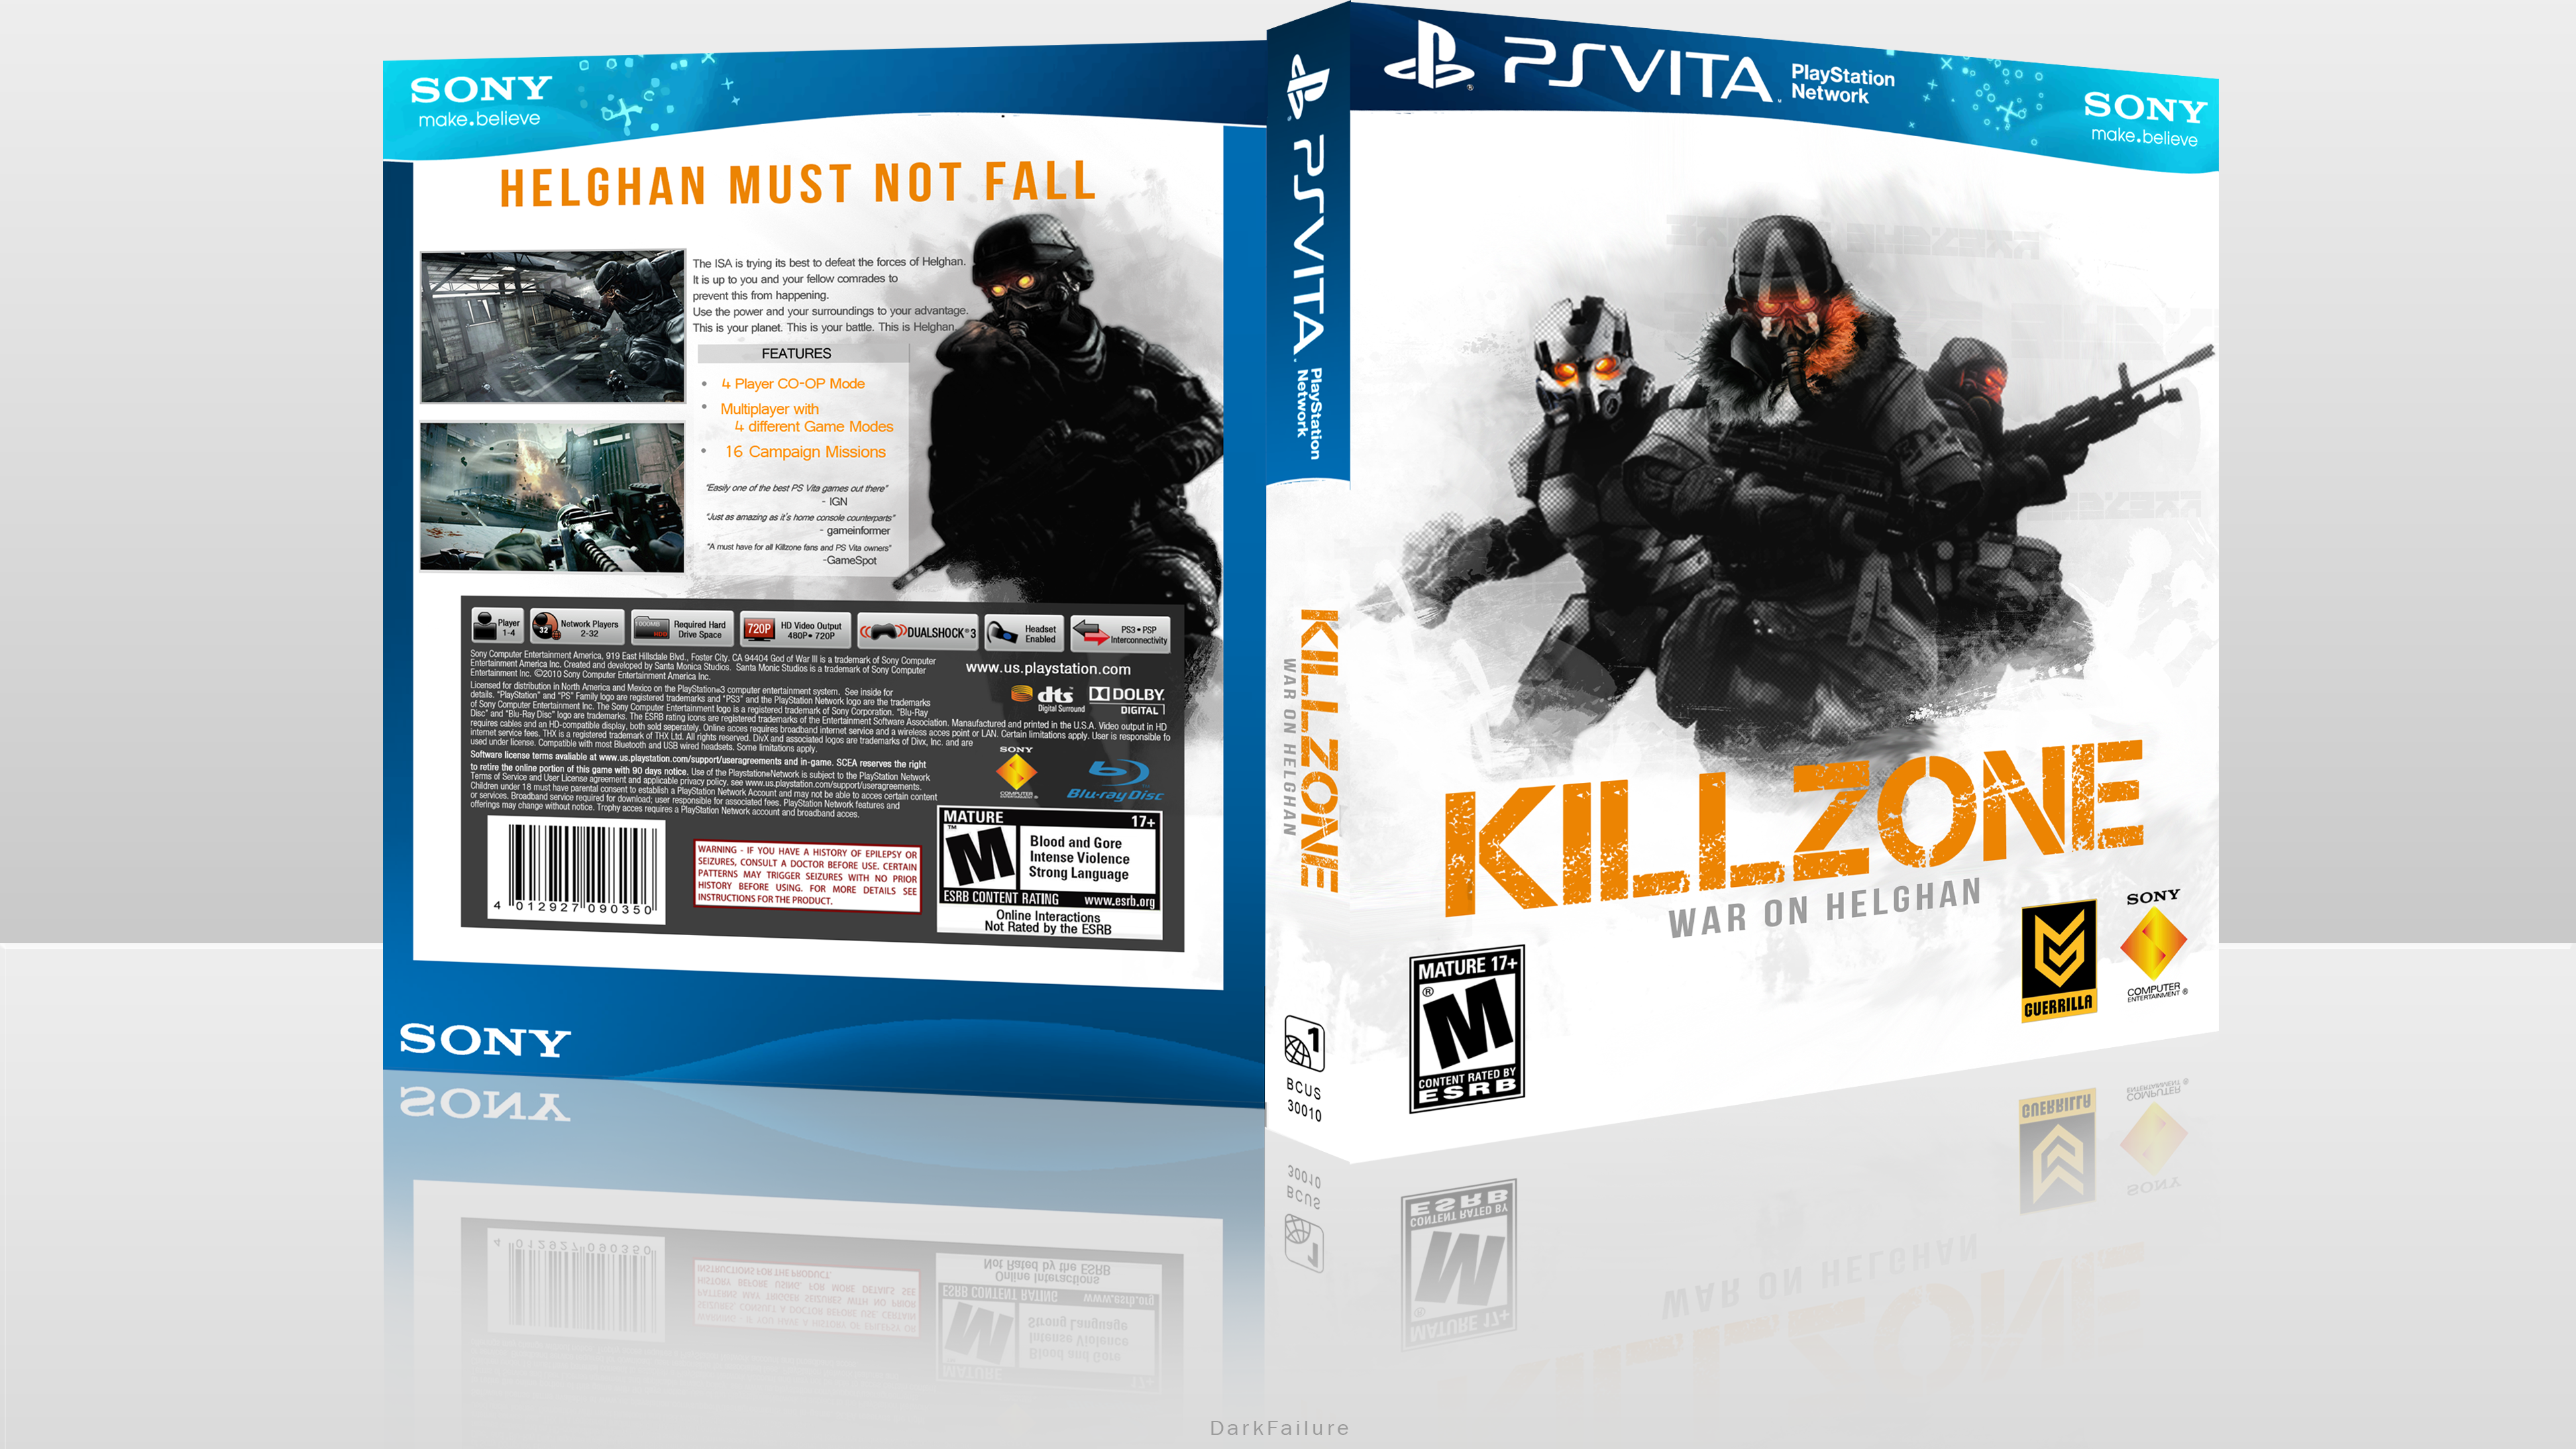 Killzone War On Helghan box cover